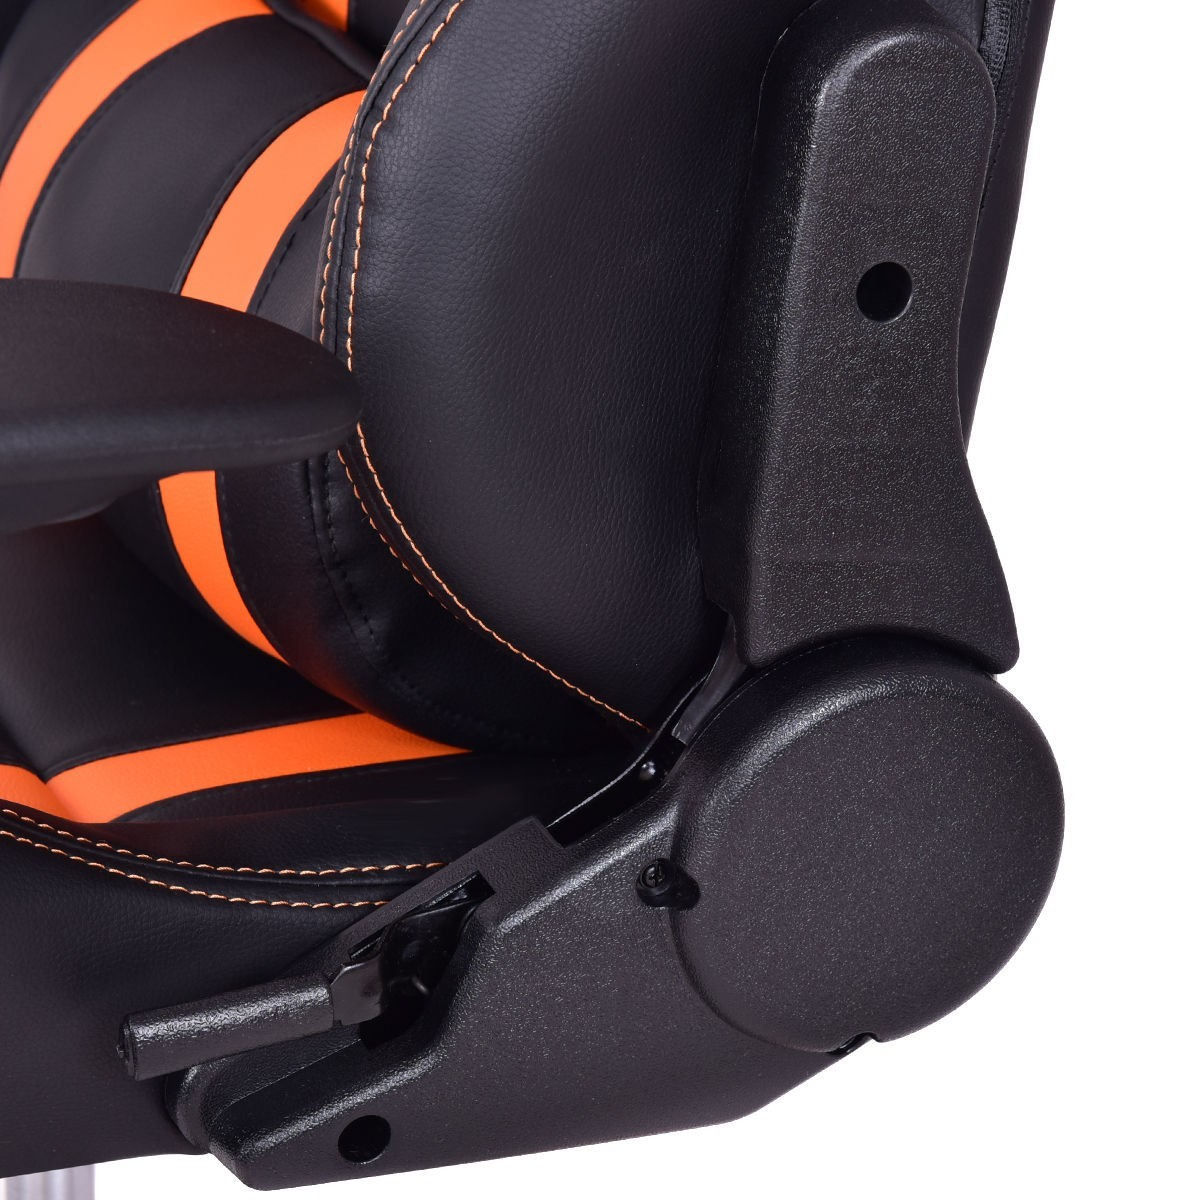 High-Back Reclining Racing Gaming Chair with Head-Rest Pillow - Orange